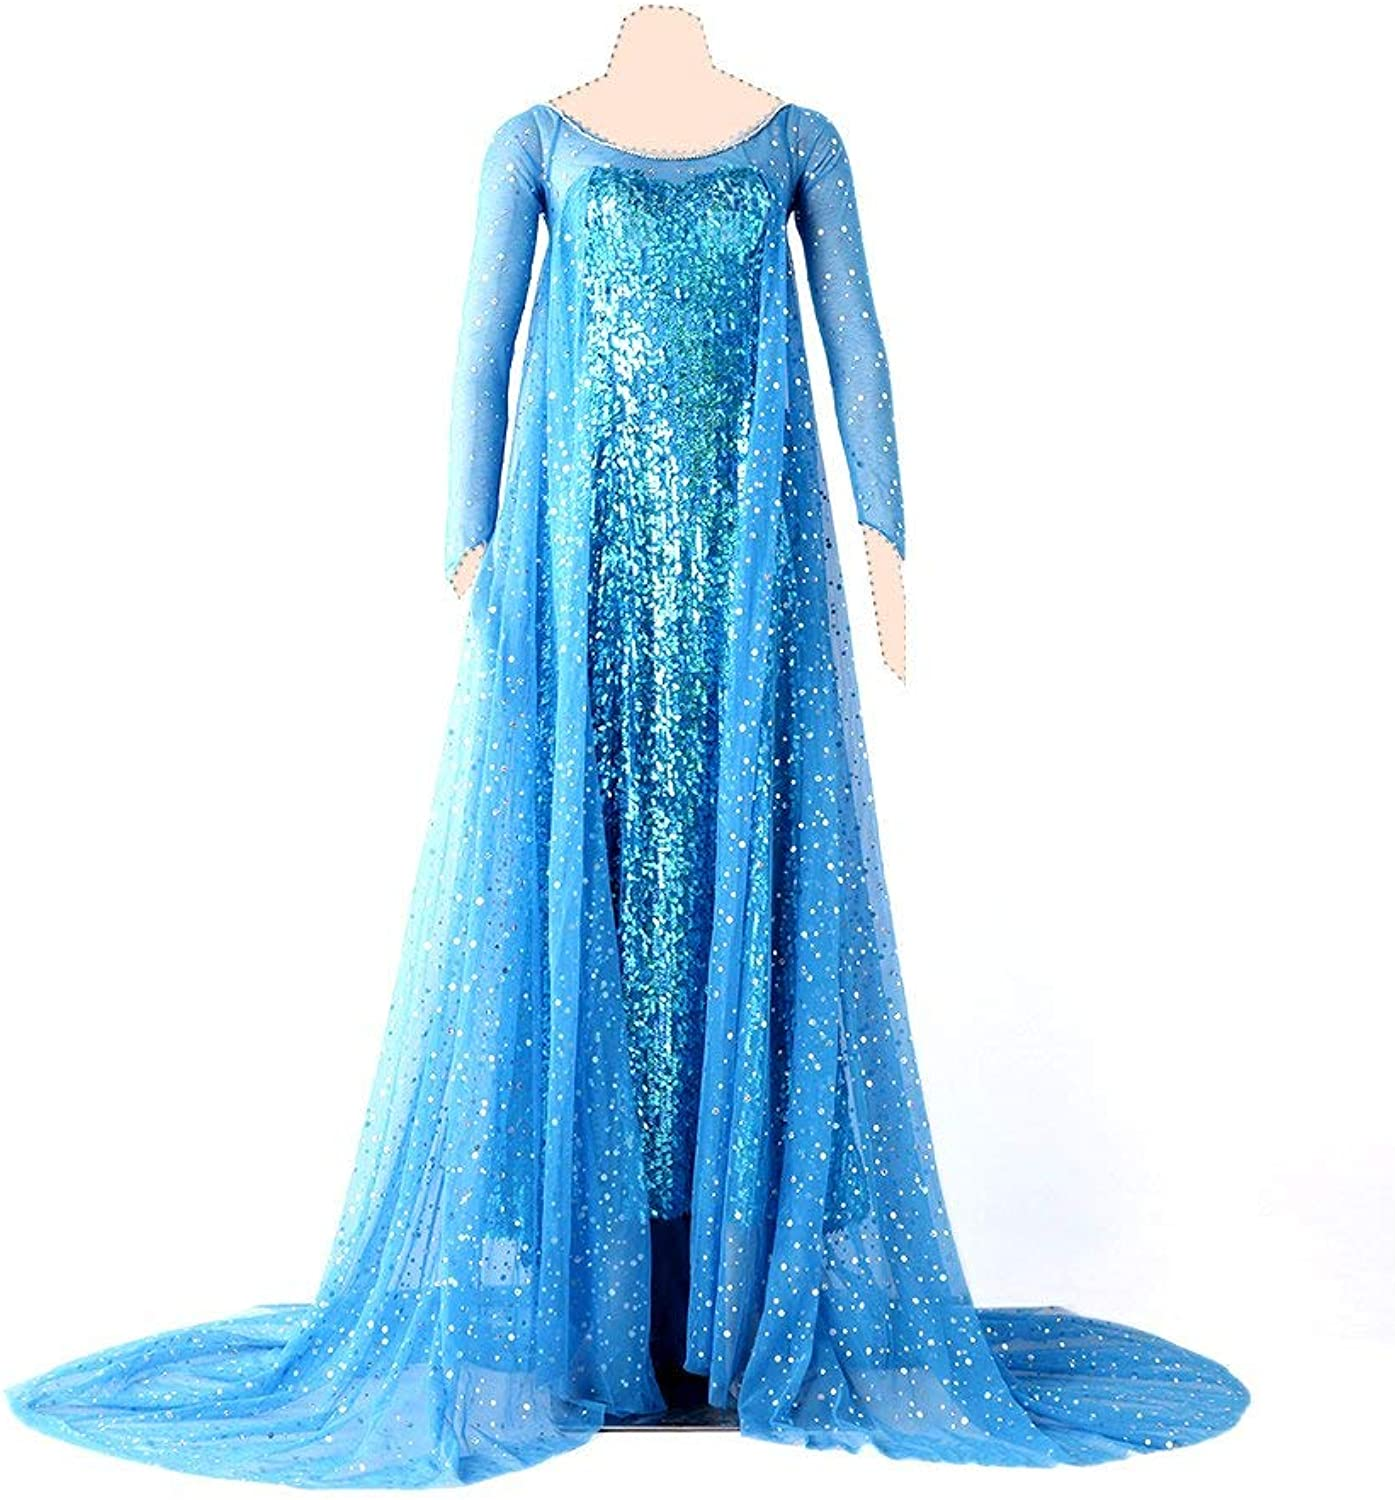 Frozen Cosplay Kostuem ELSA Ver.1 Dress XX-Small